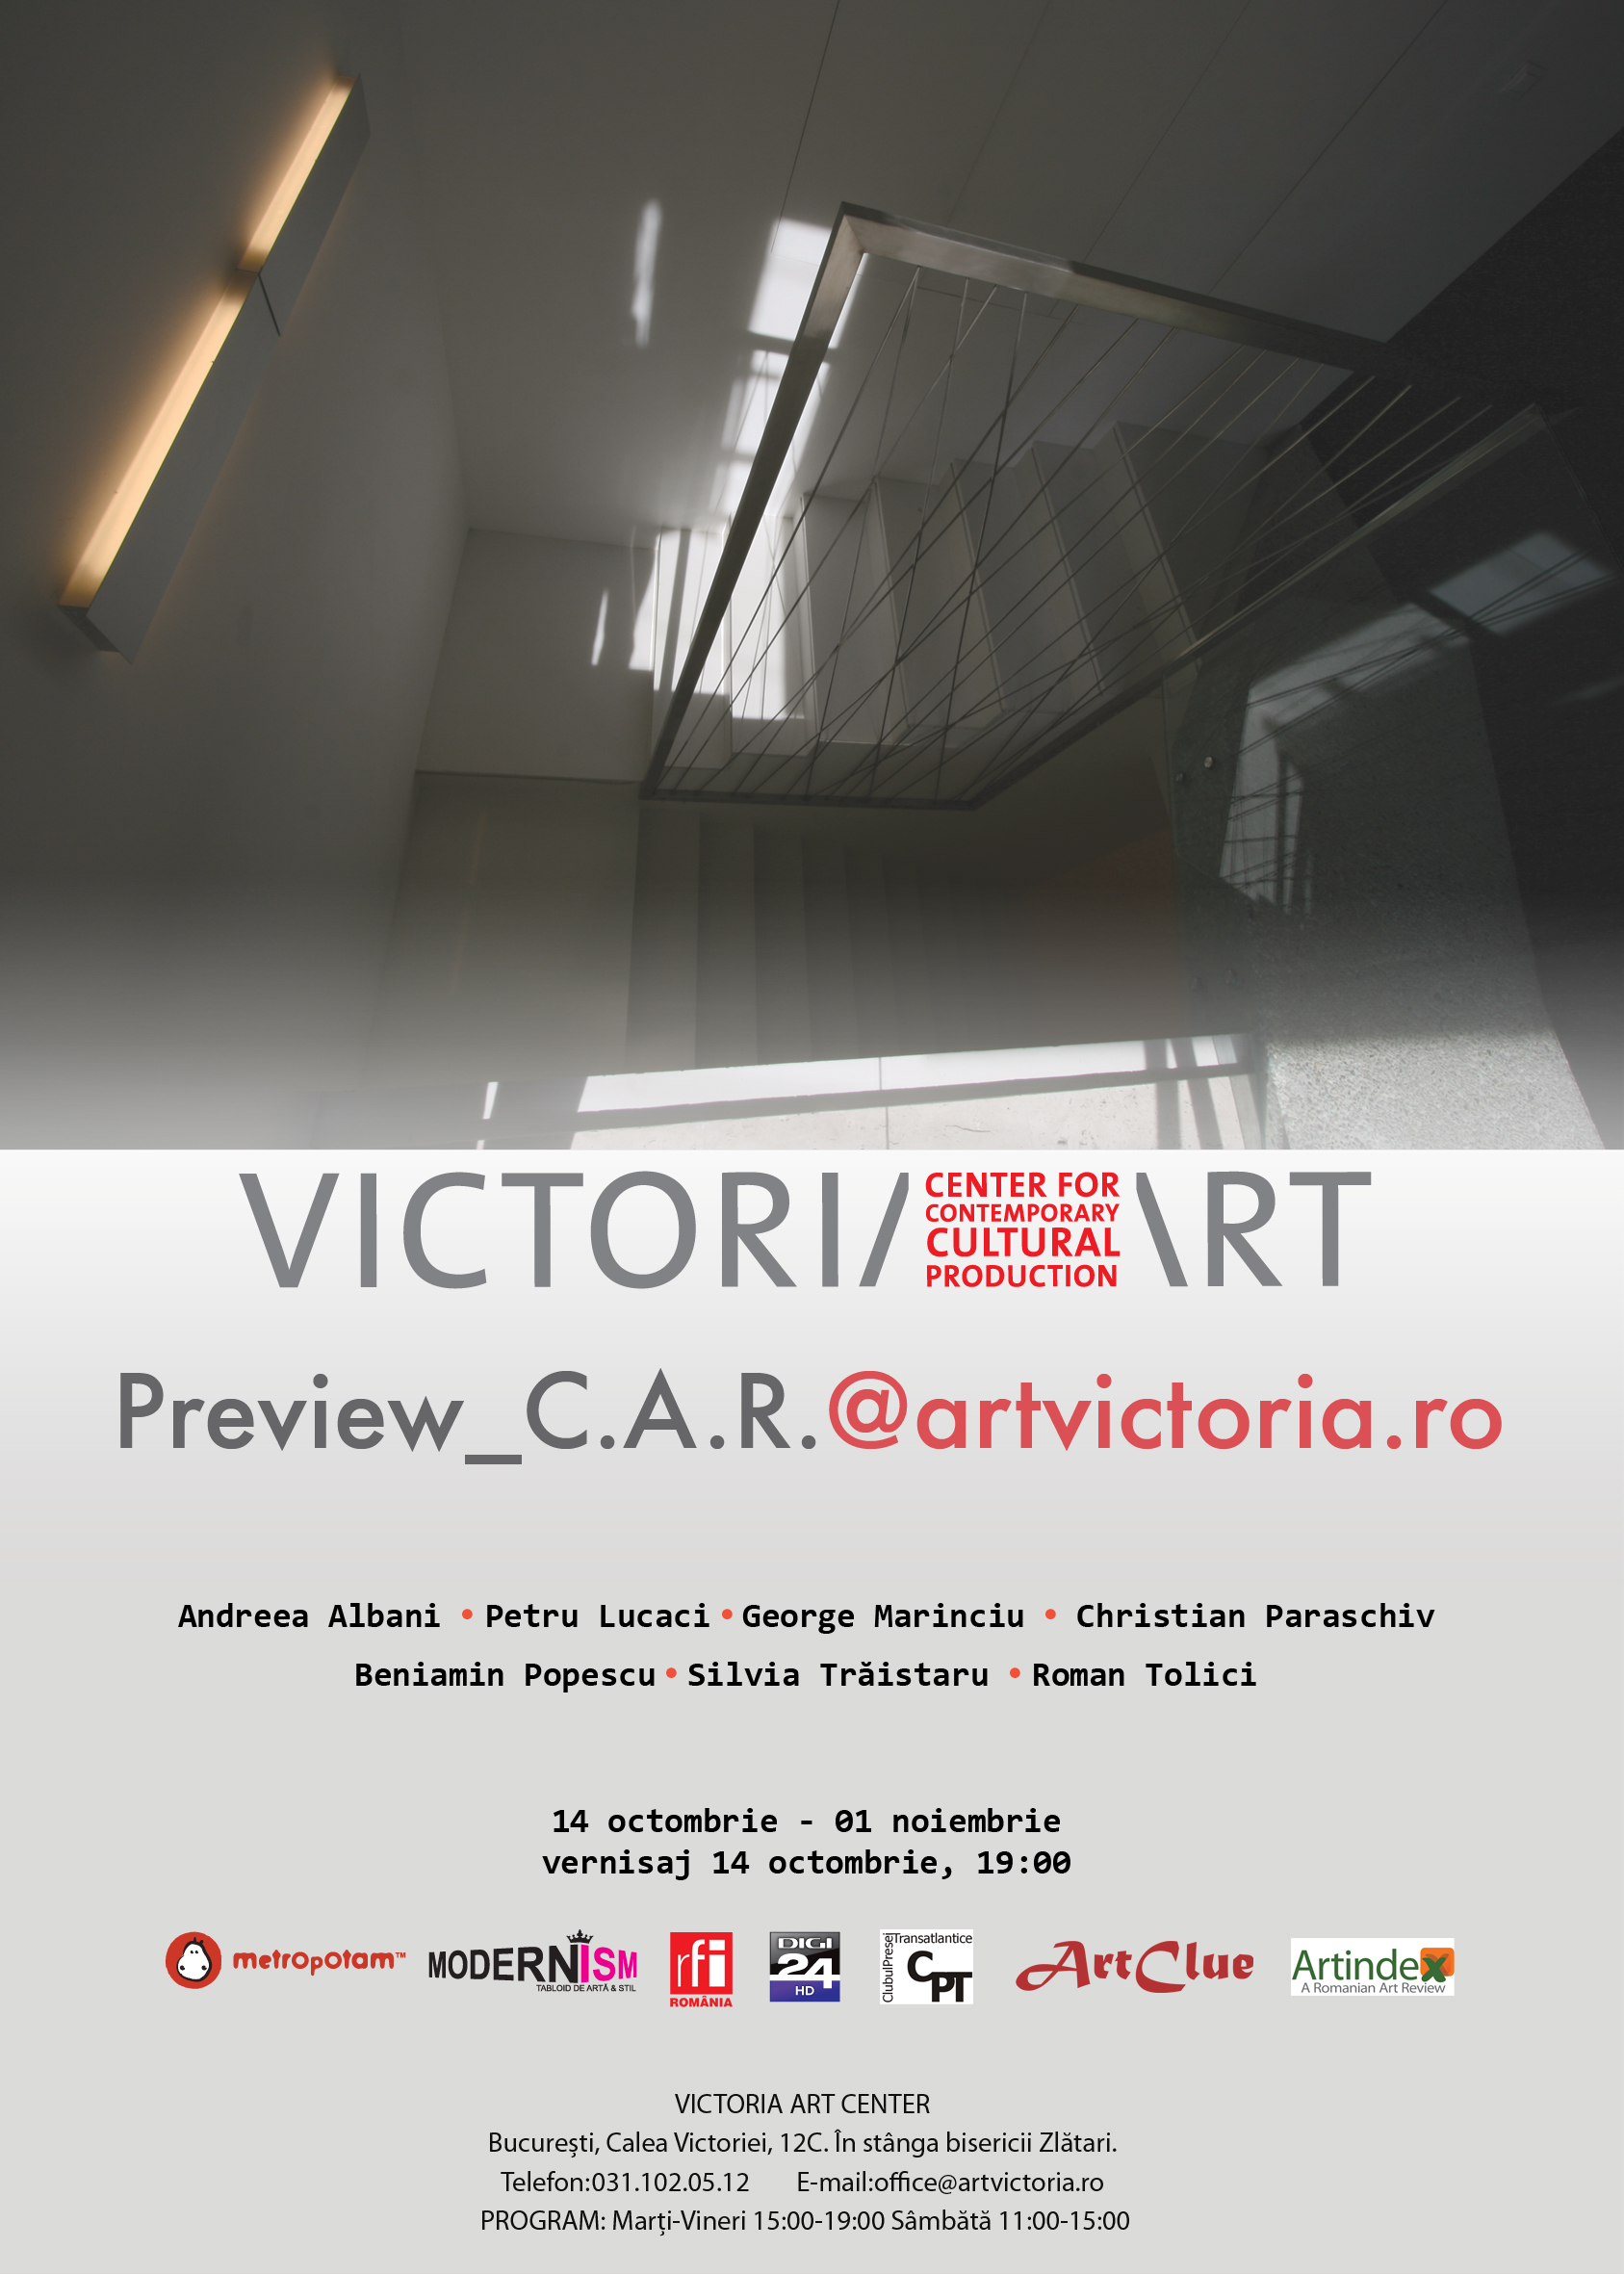 Preview_C.A.R. @ artvictoria.ro